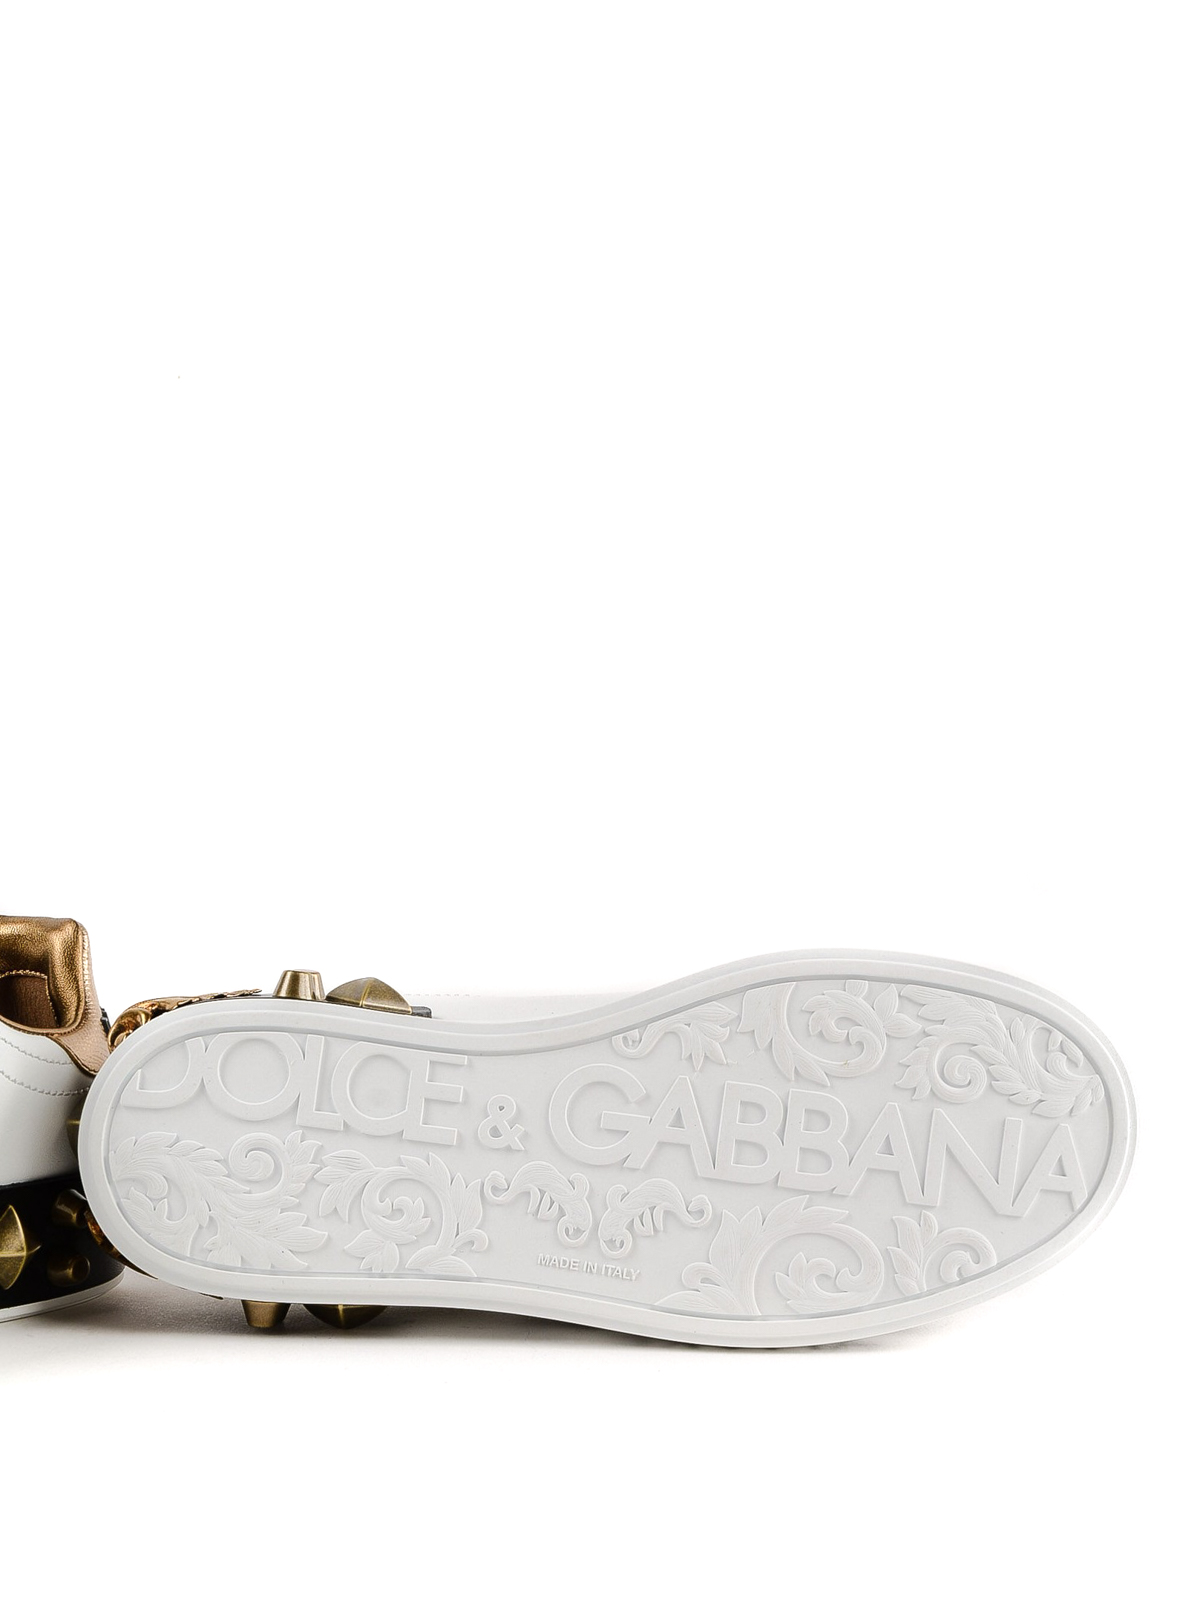 big sale 5314f b3d7f DOLCE   GABBANA buy online Portofino sneakers with crown patch